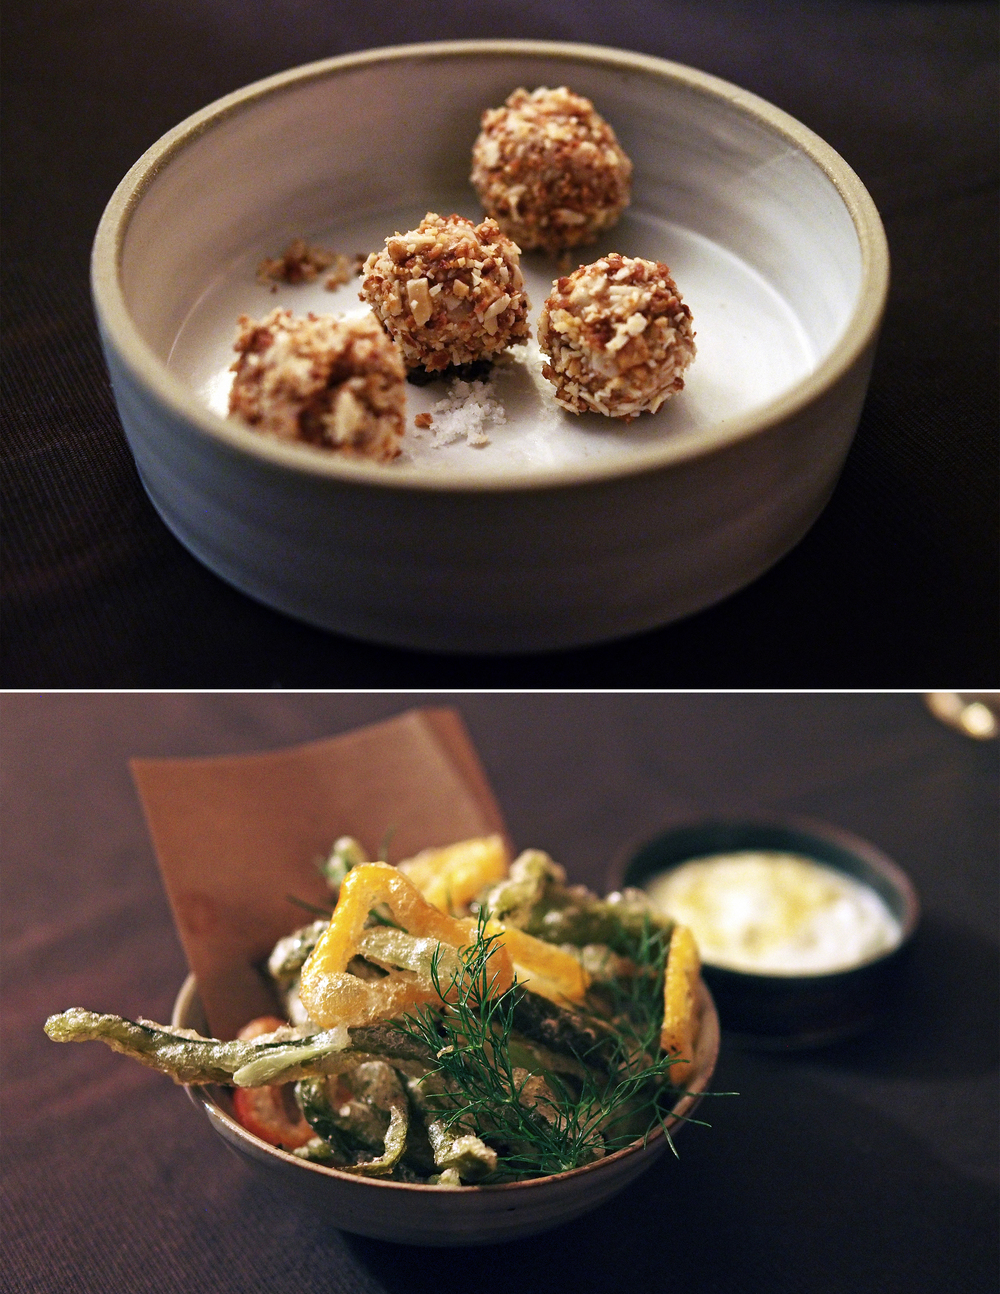 Top: Foie Gras Bonbons  Bottom: Fried Pickles with peppers and yogurt